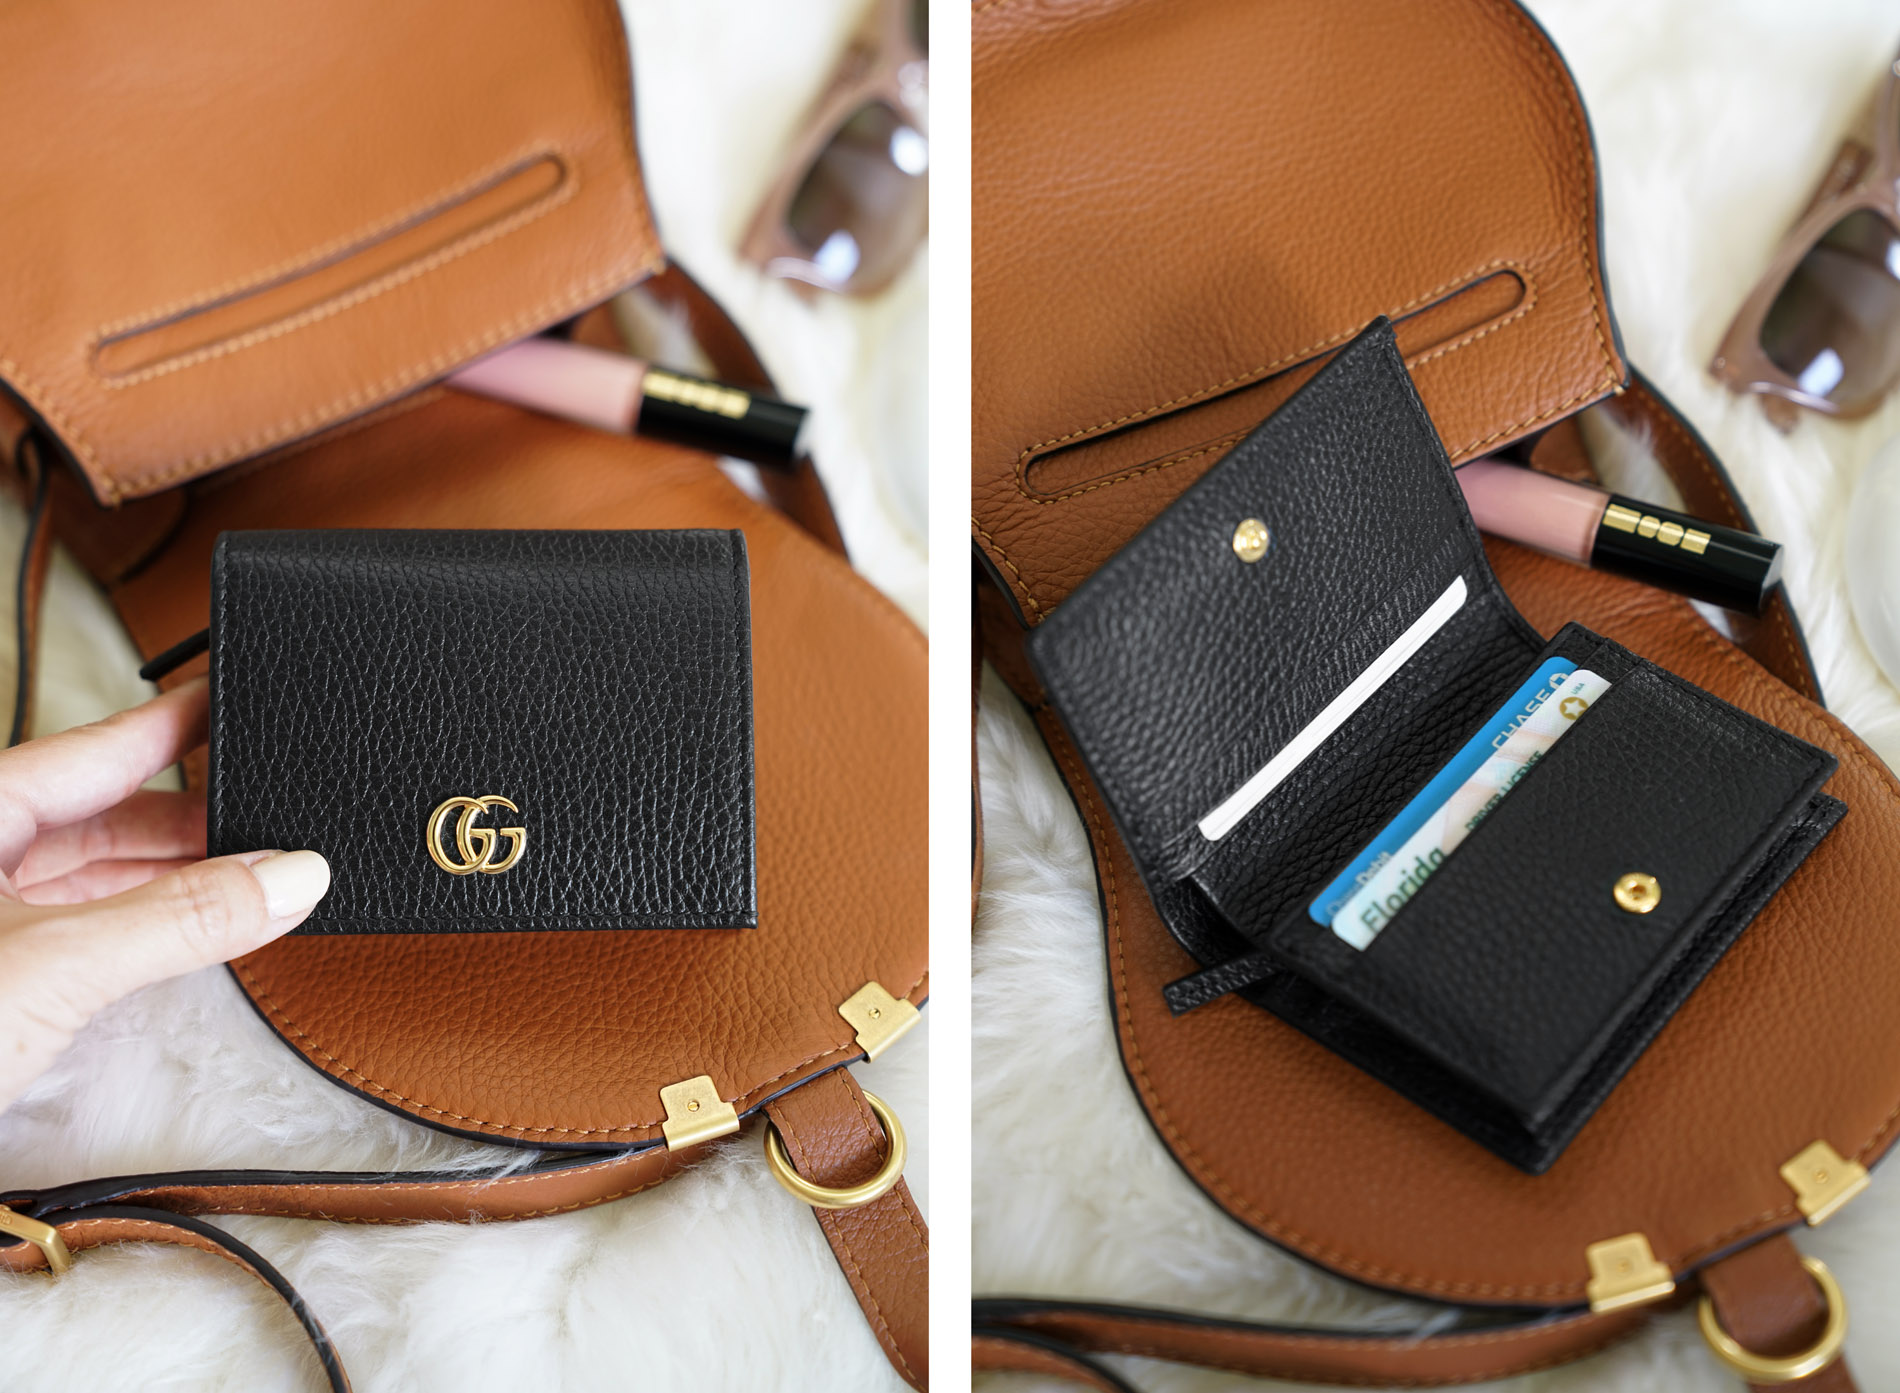 Chloe Mini Marcie Bag Review The Beauty Look Book